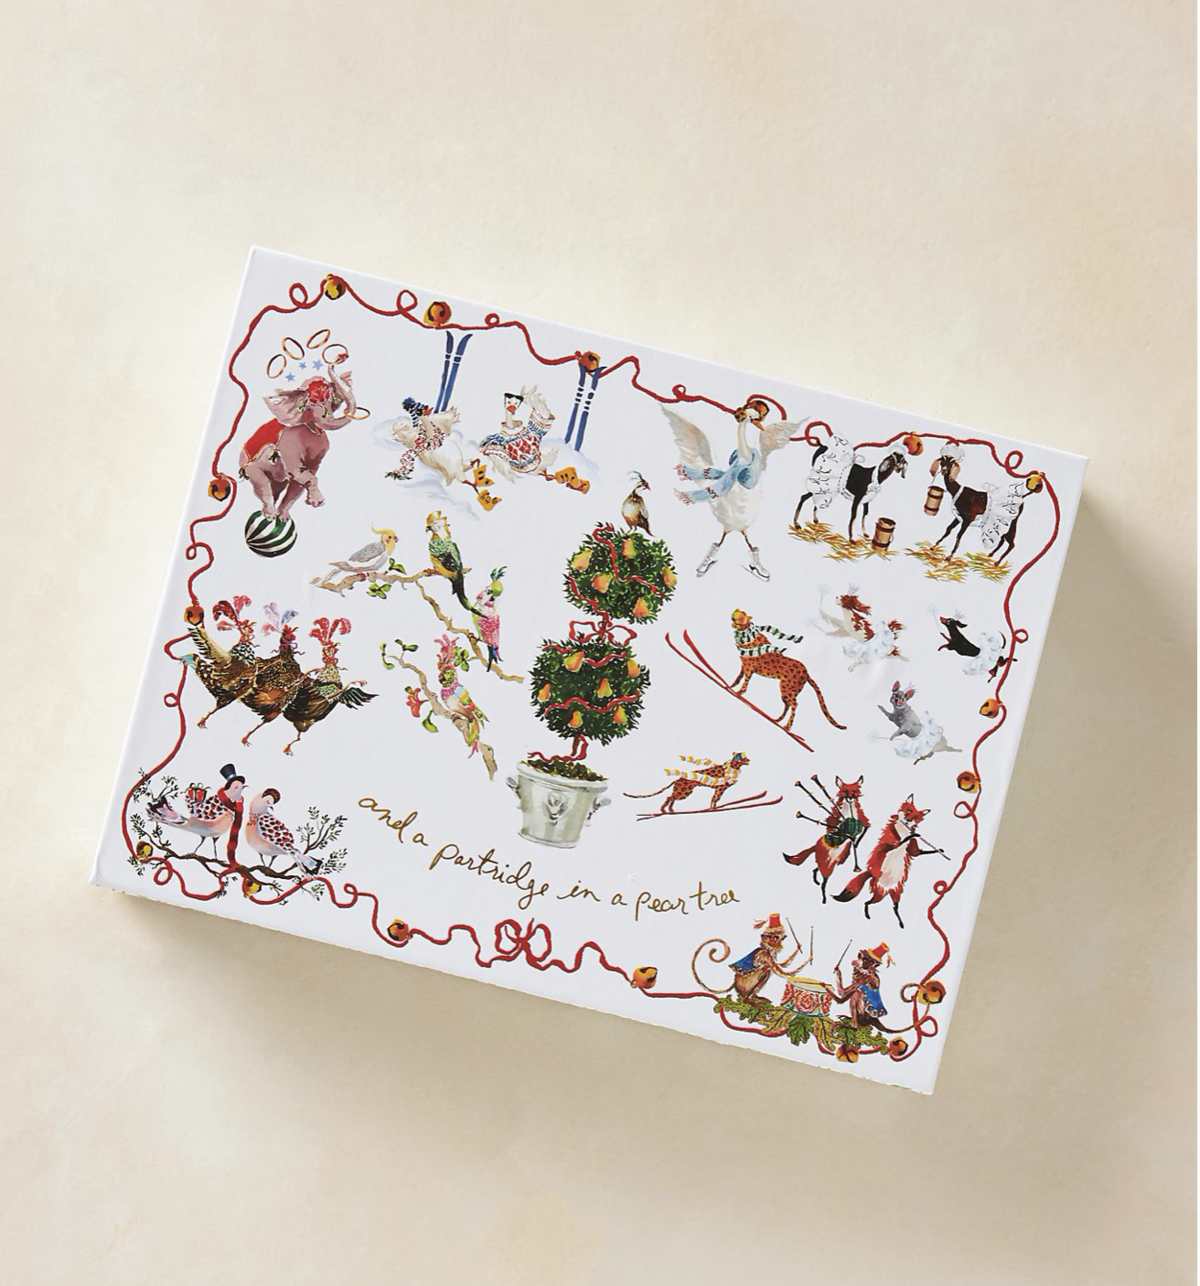 Inslee Fariss Twelve Days of Christmas Menagerie Candle Advent Calendar Gift Set – On Sale Now